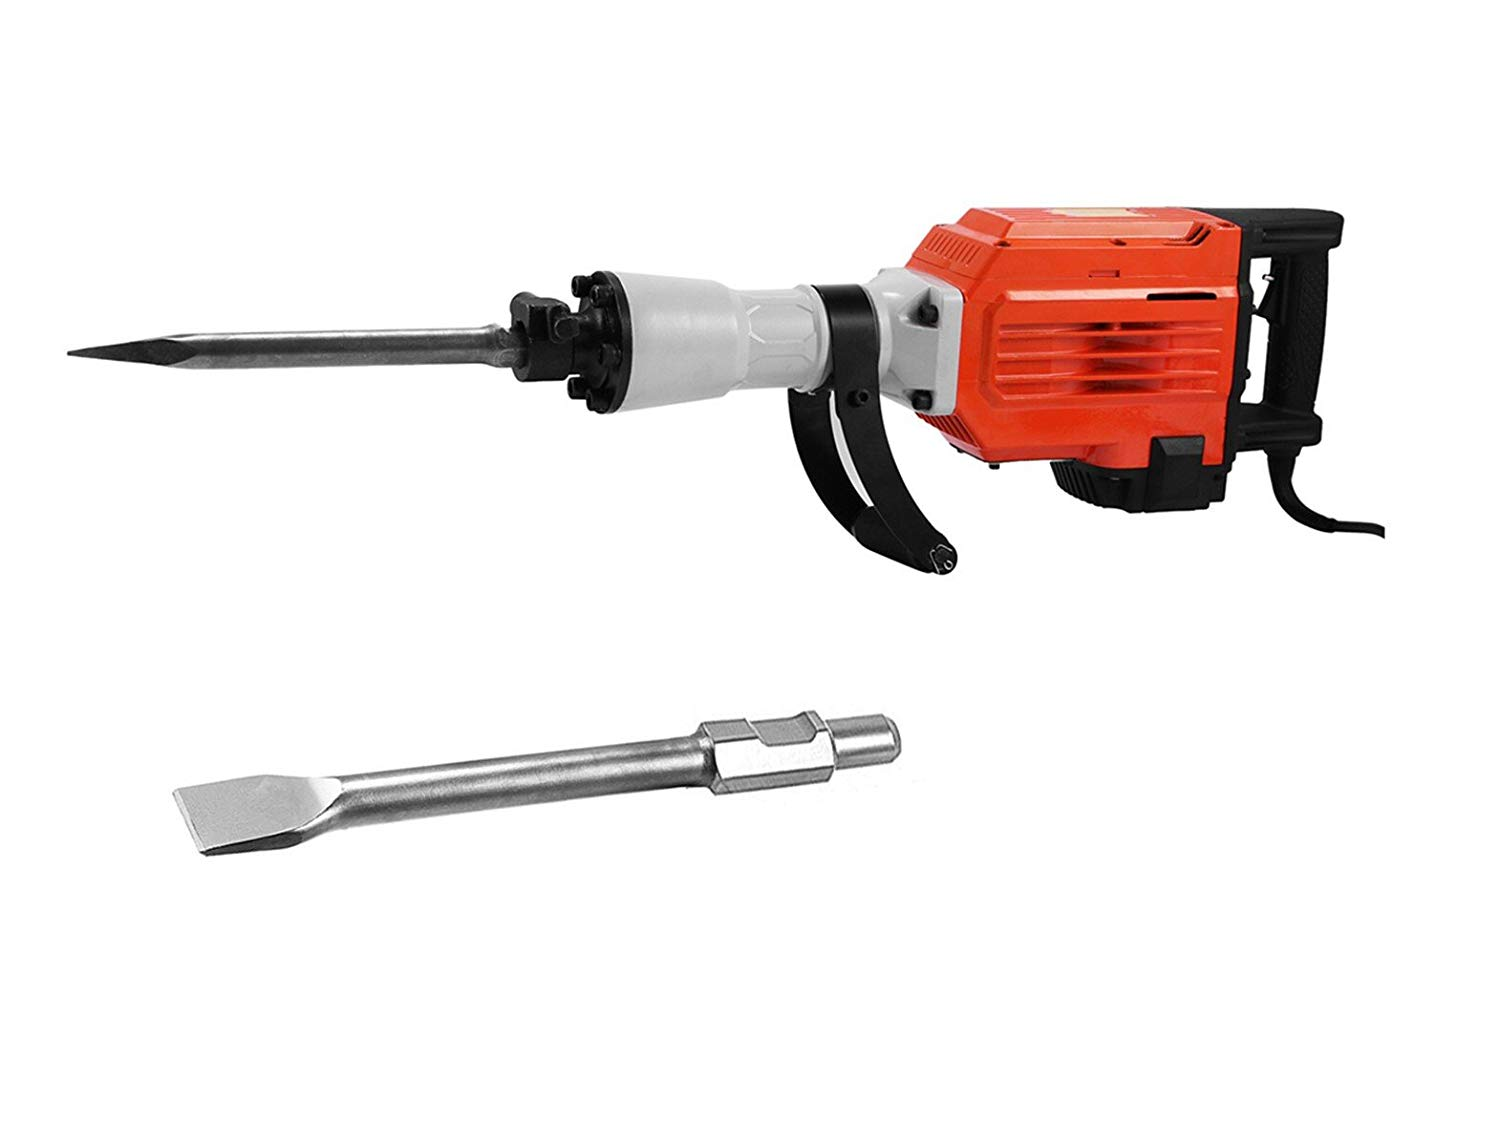 Best Electric Jackhammer